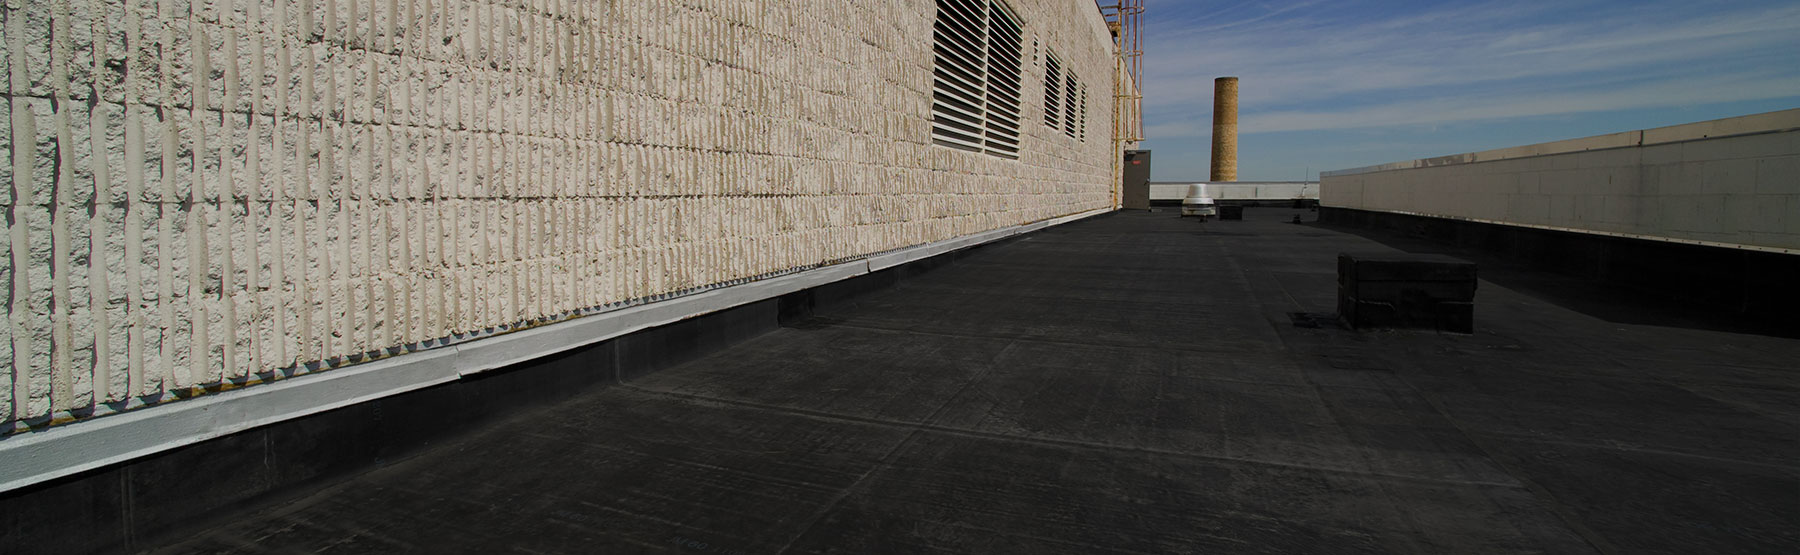 commercial-roofing-guidance-helpful-info1